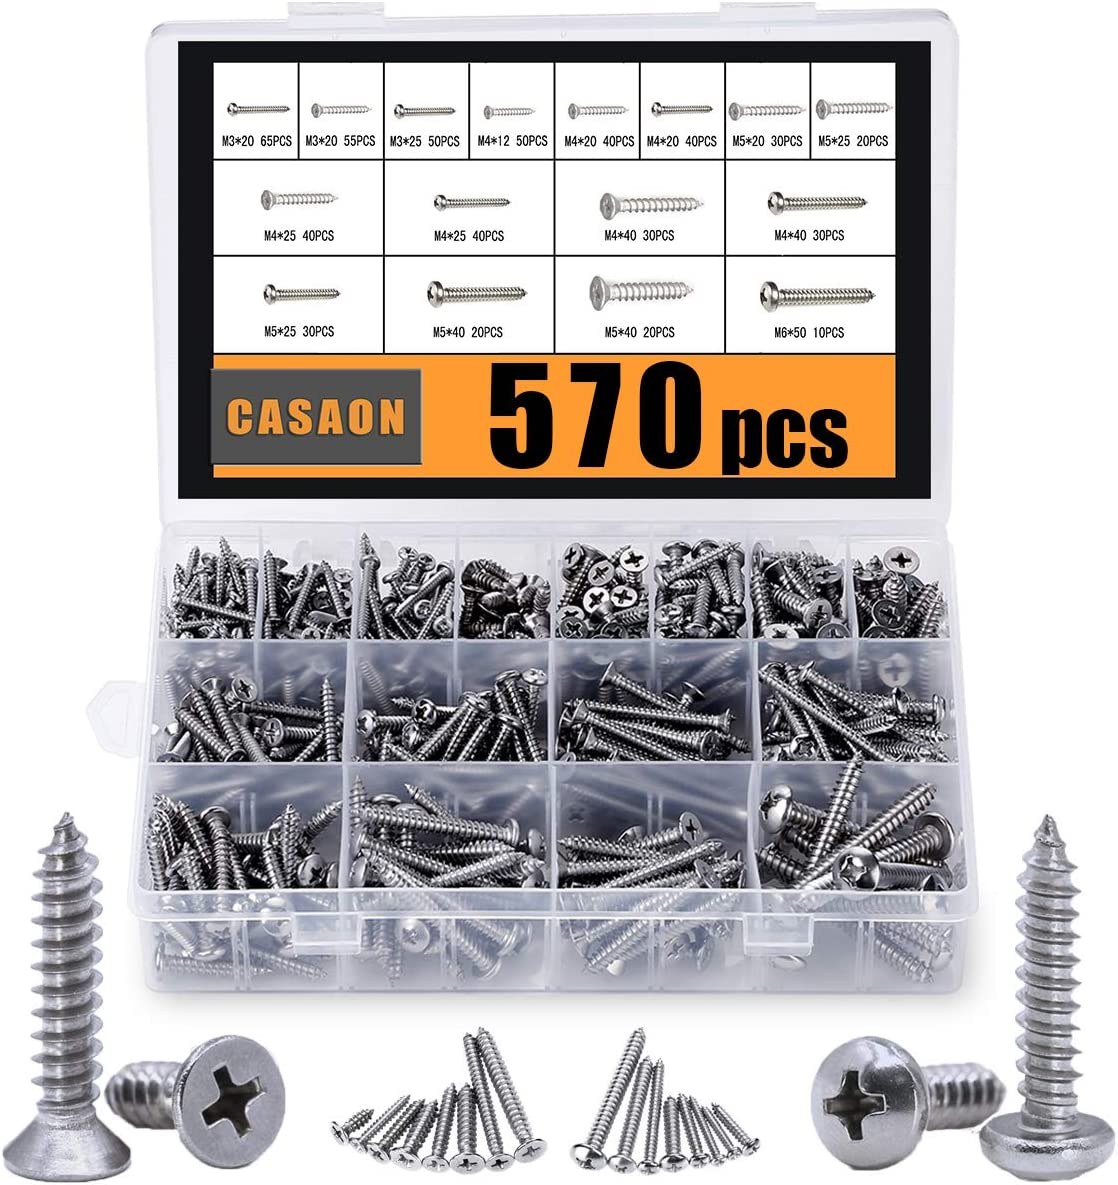 Self Tapping Screws Assortment Set, M3/M4/M5/M6 304 Stainless Steel Sheet Metal Screws Kit, Casaon Phillips Drive Wood Screw Assortment 570pcs (285pcs Round Head and 285pcs Flat Head)